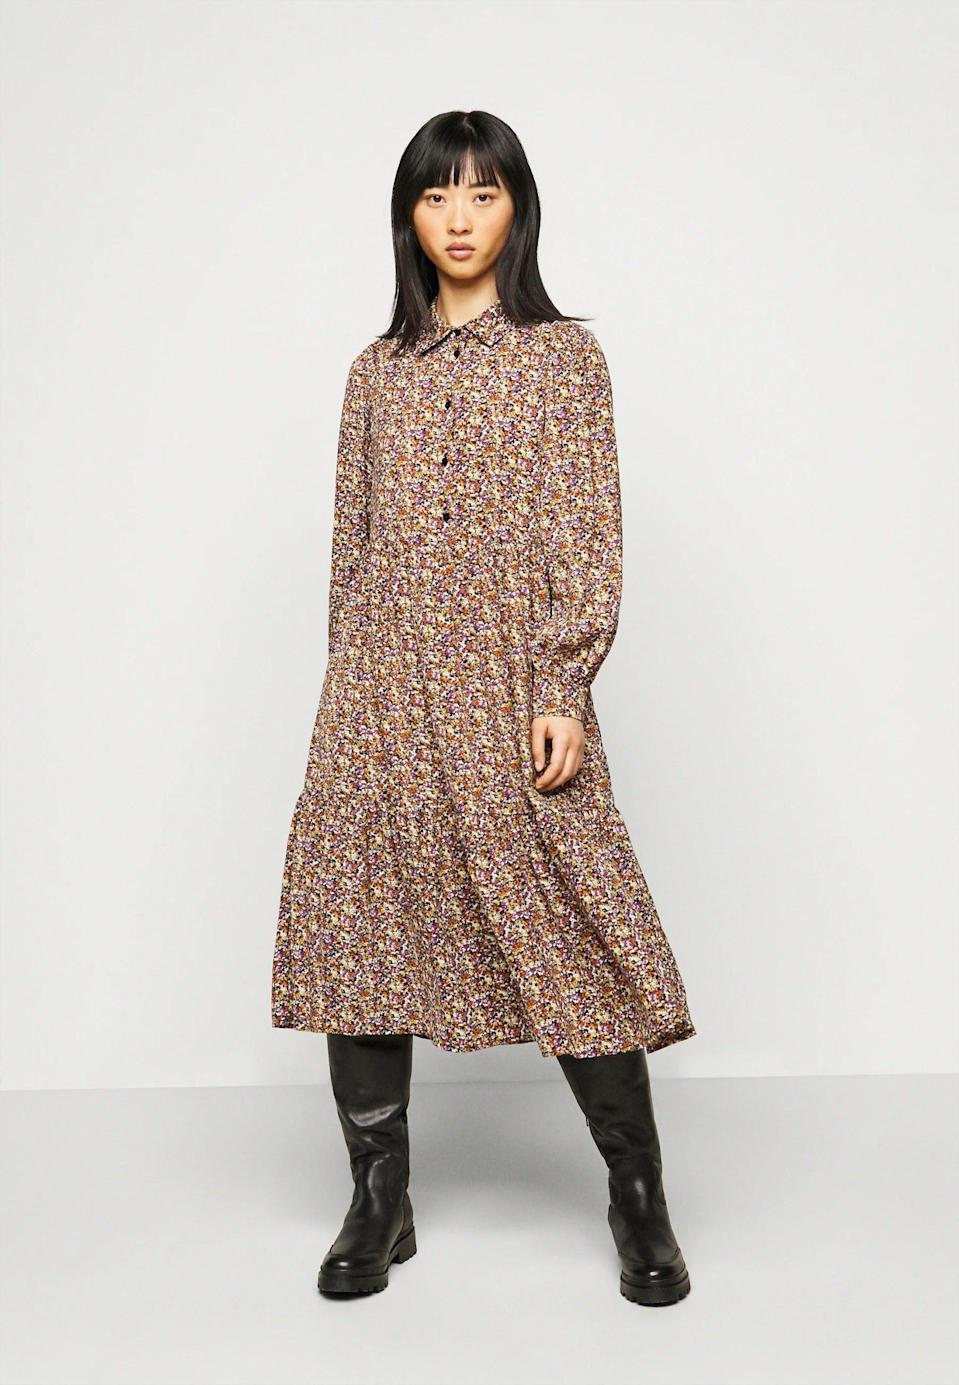 "<br><br><strong>Pieces Petite</strong> Pcanja Midi Dress, $, available at <a href=""https://www.zalando.co.uk/pieces-petite-pcanja-midi-dress-shirt-dress-blackbrownpurple-pit21c01e-q11.html"" rel=""nofollow noopener"" target=""_blank"" data-ylk=""slk:Zalando"" class=""link rapid-noclick-resp"">Zalando</a>"